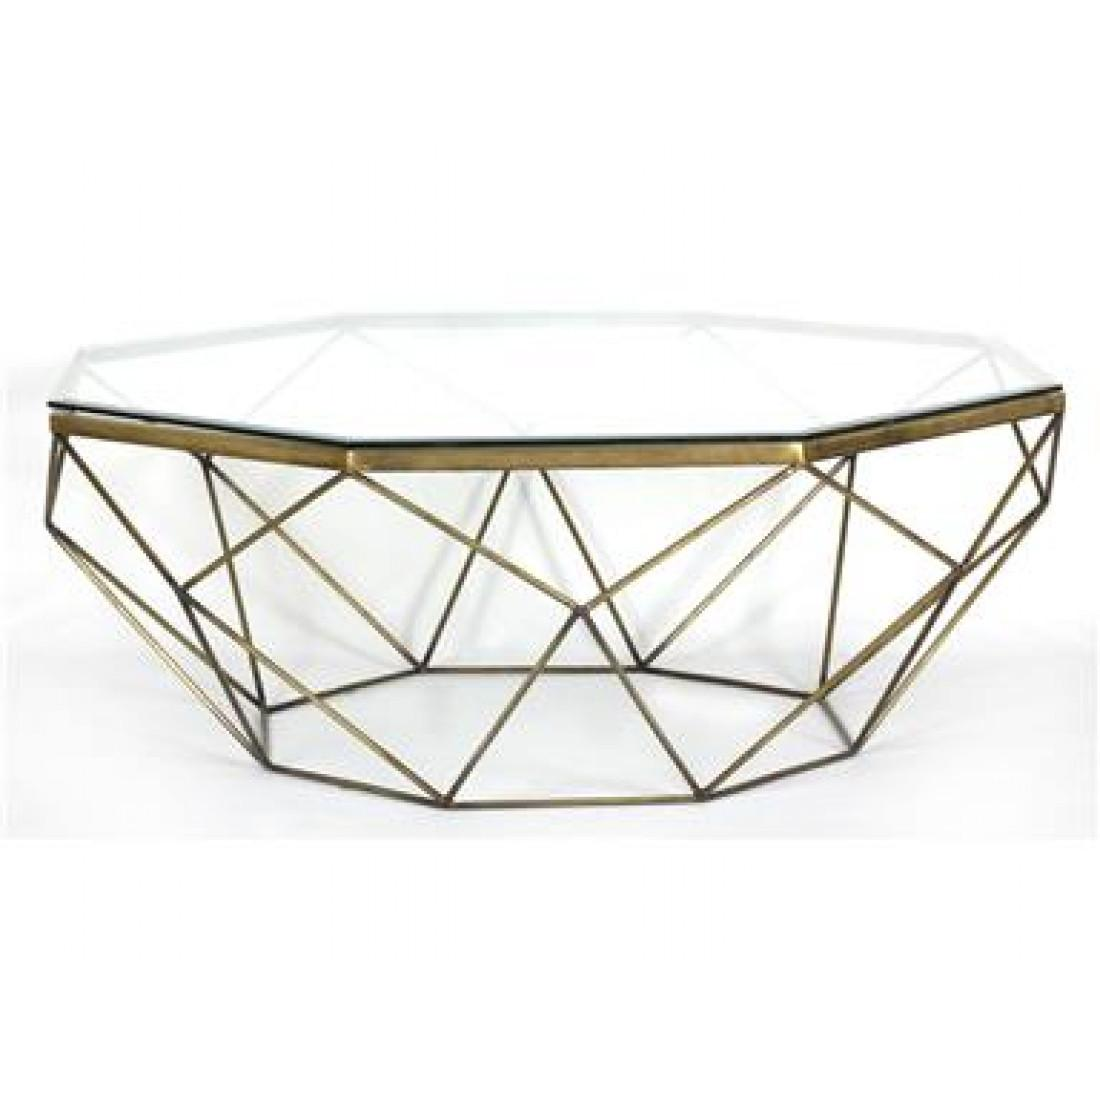 agate side table west elm | 1100x1100